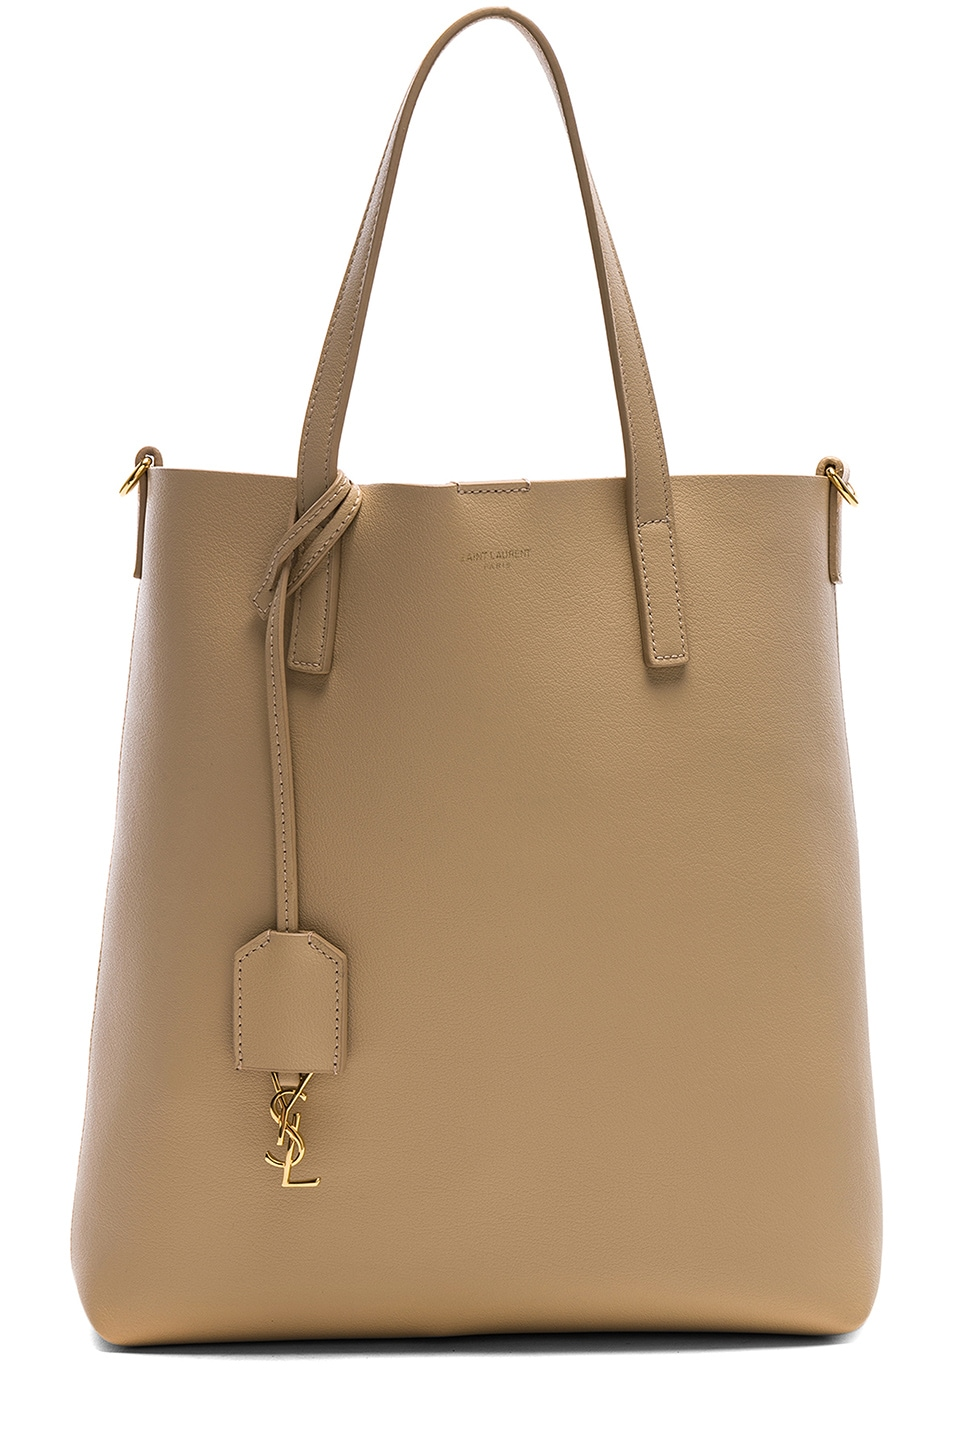 Image 1 of Saint Laurent Toy North South Tote Bag in Nude Powder 44d1c60ae183b